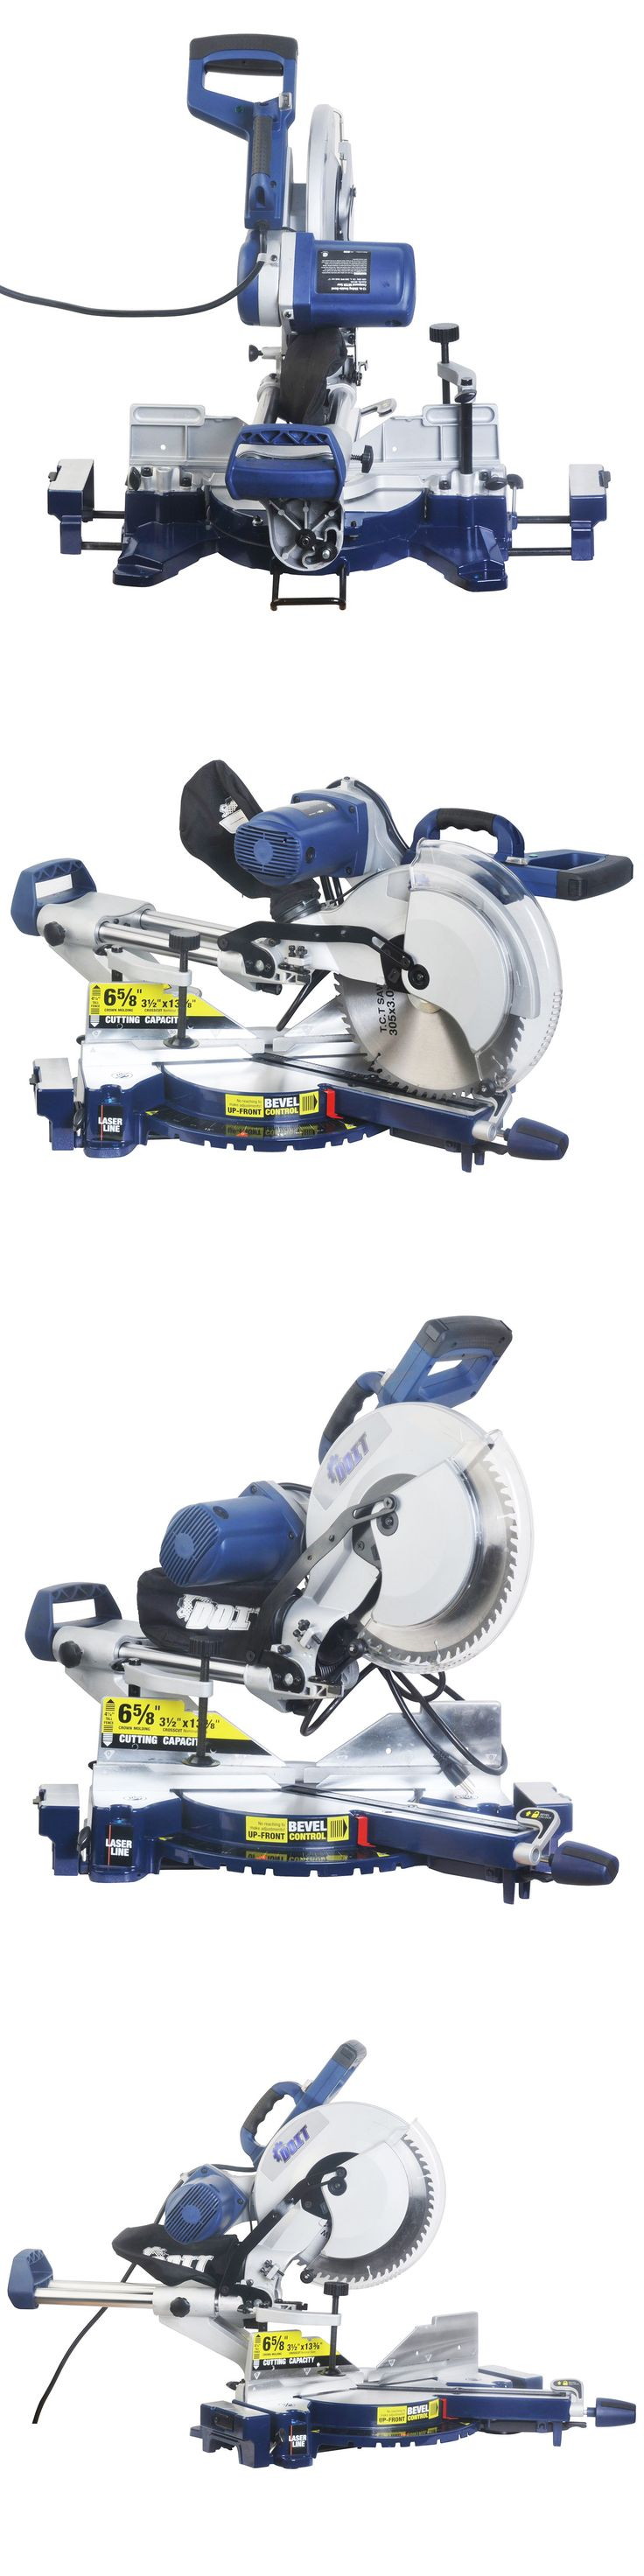 Miter and Chop Saws 20787: 12 Double-Bevel Sliding Compound Miter Saw W Laser Guide Trim Moulding -> BUY IT NOW ONLY: $175.99 on eBay!